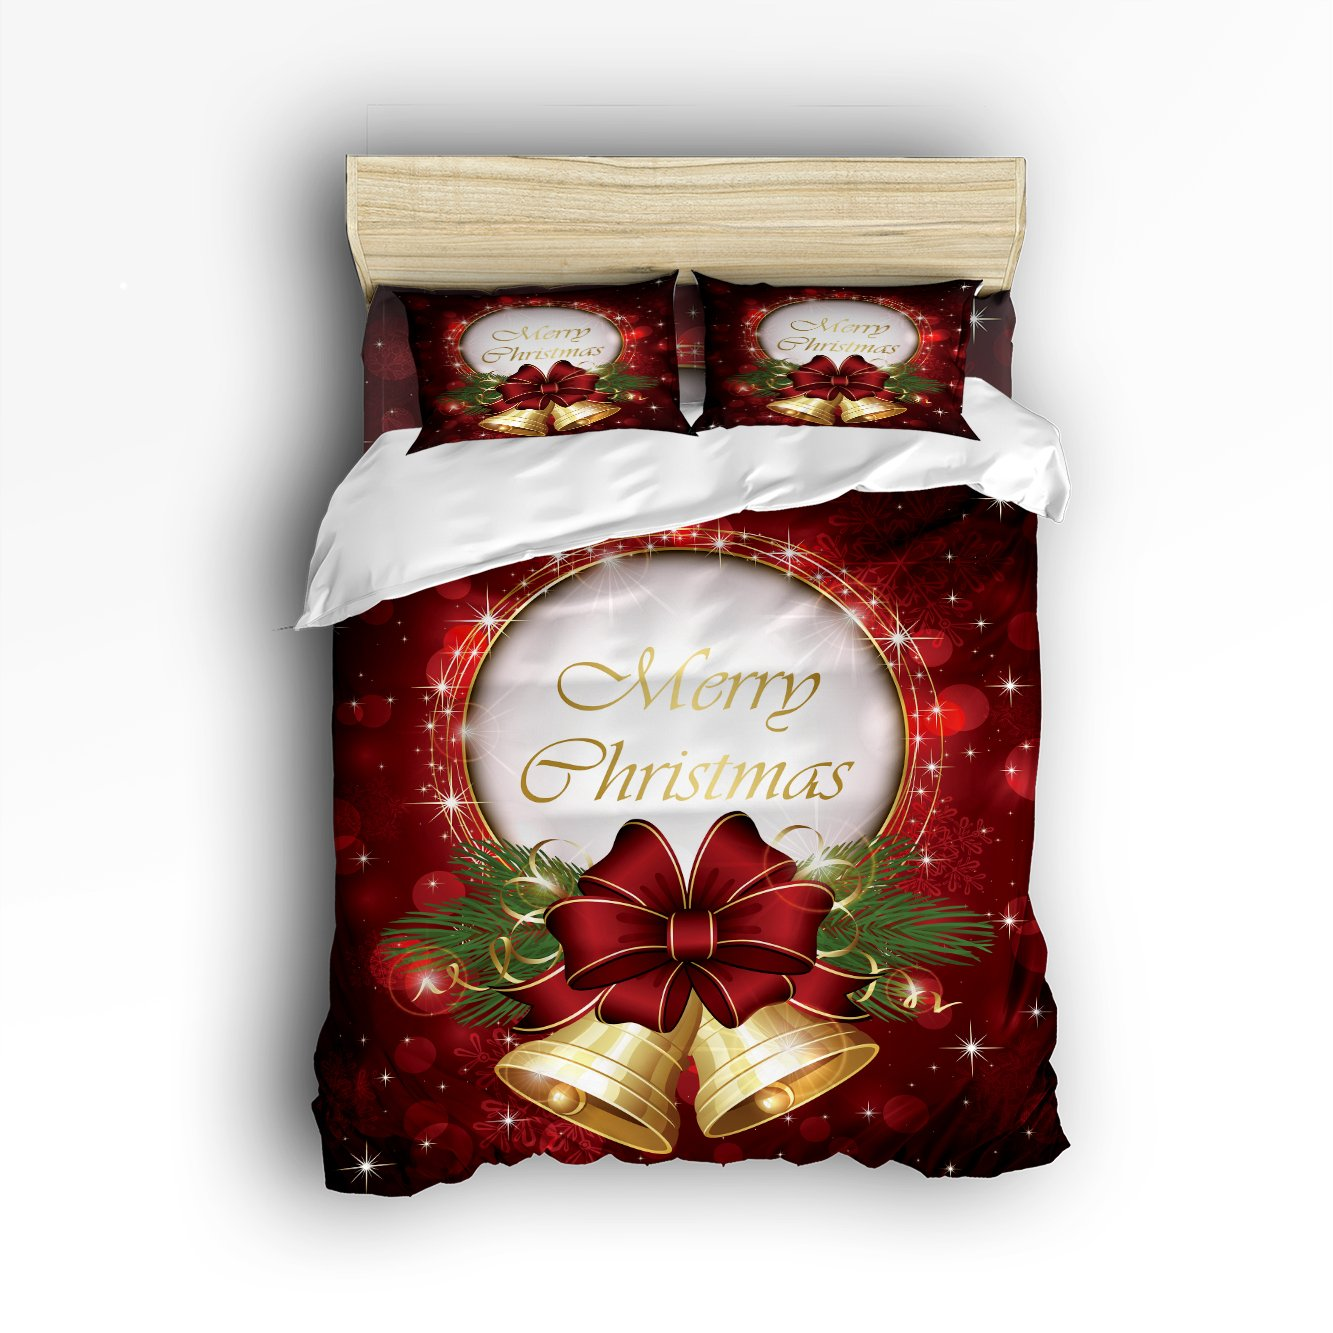 Family Decor Merry Christmas Print Home Comforter Cover Bedding Sets Duvet Cover Sets Bedspread for Adult Kids,Flat Sheet, Shams Set 4Pieces,4 Pcs Queen Size for Kids Teenage Teens